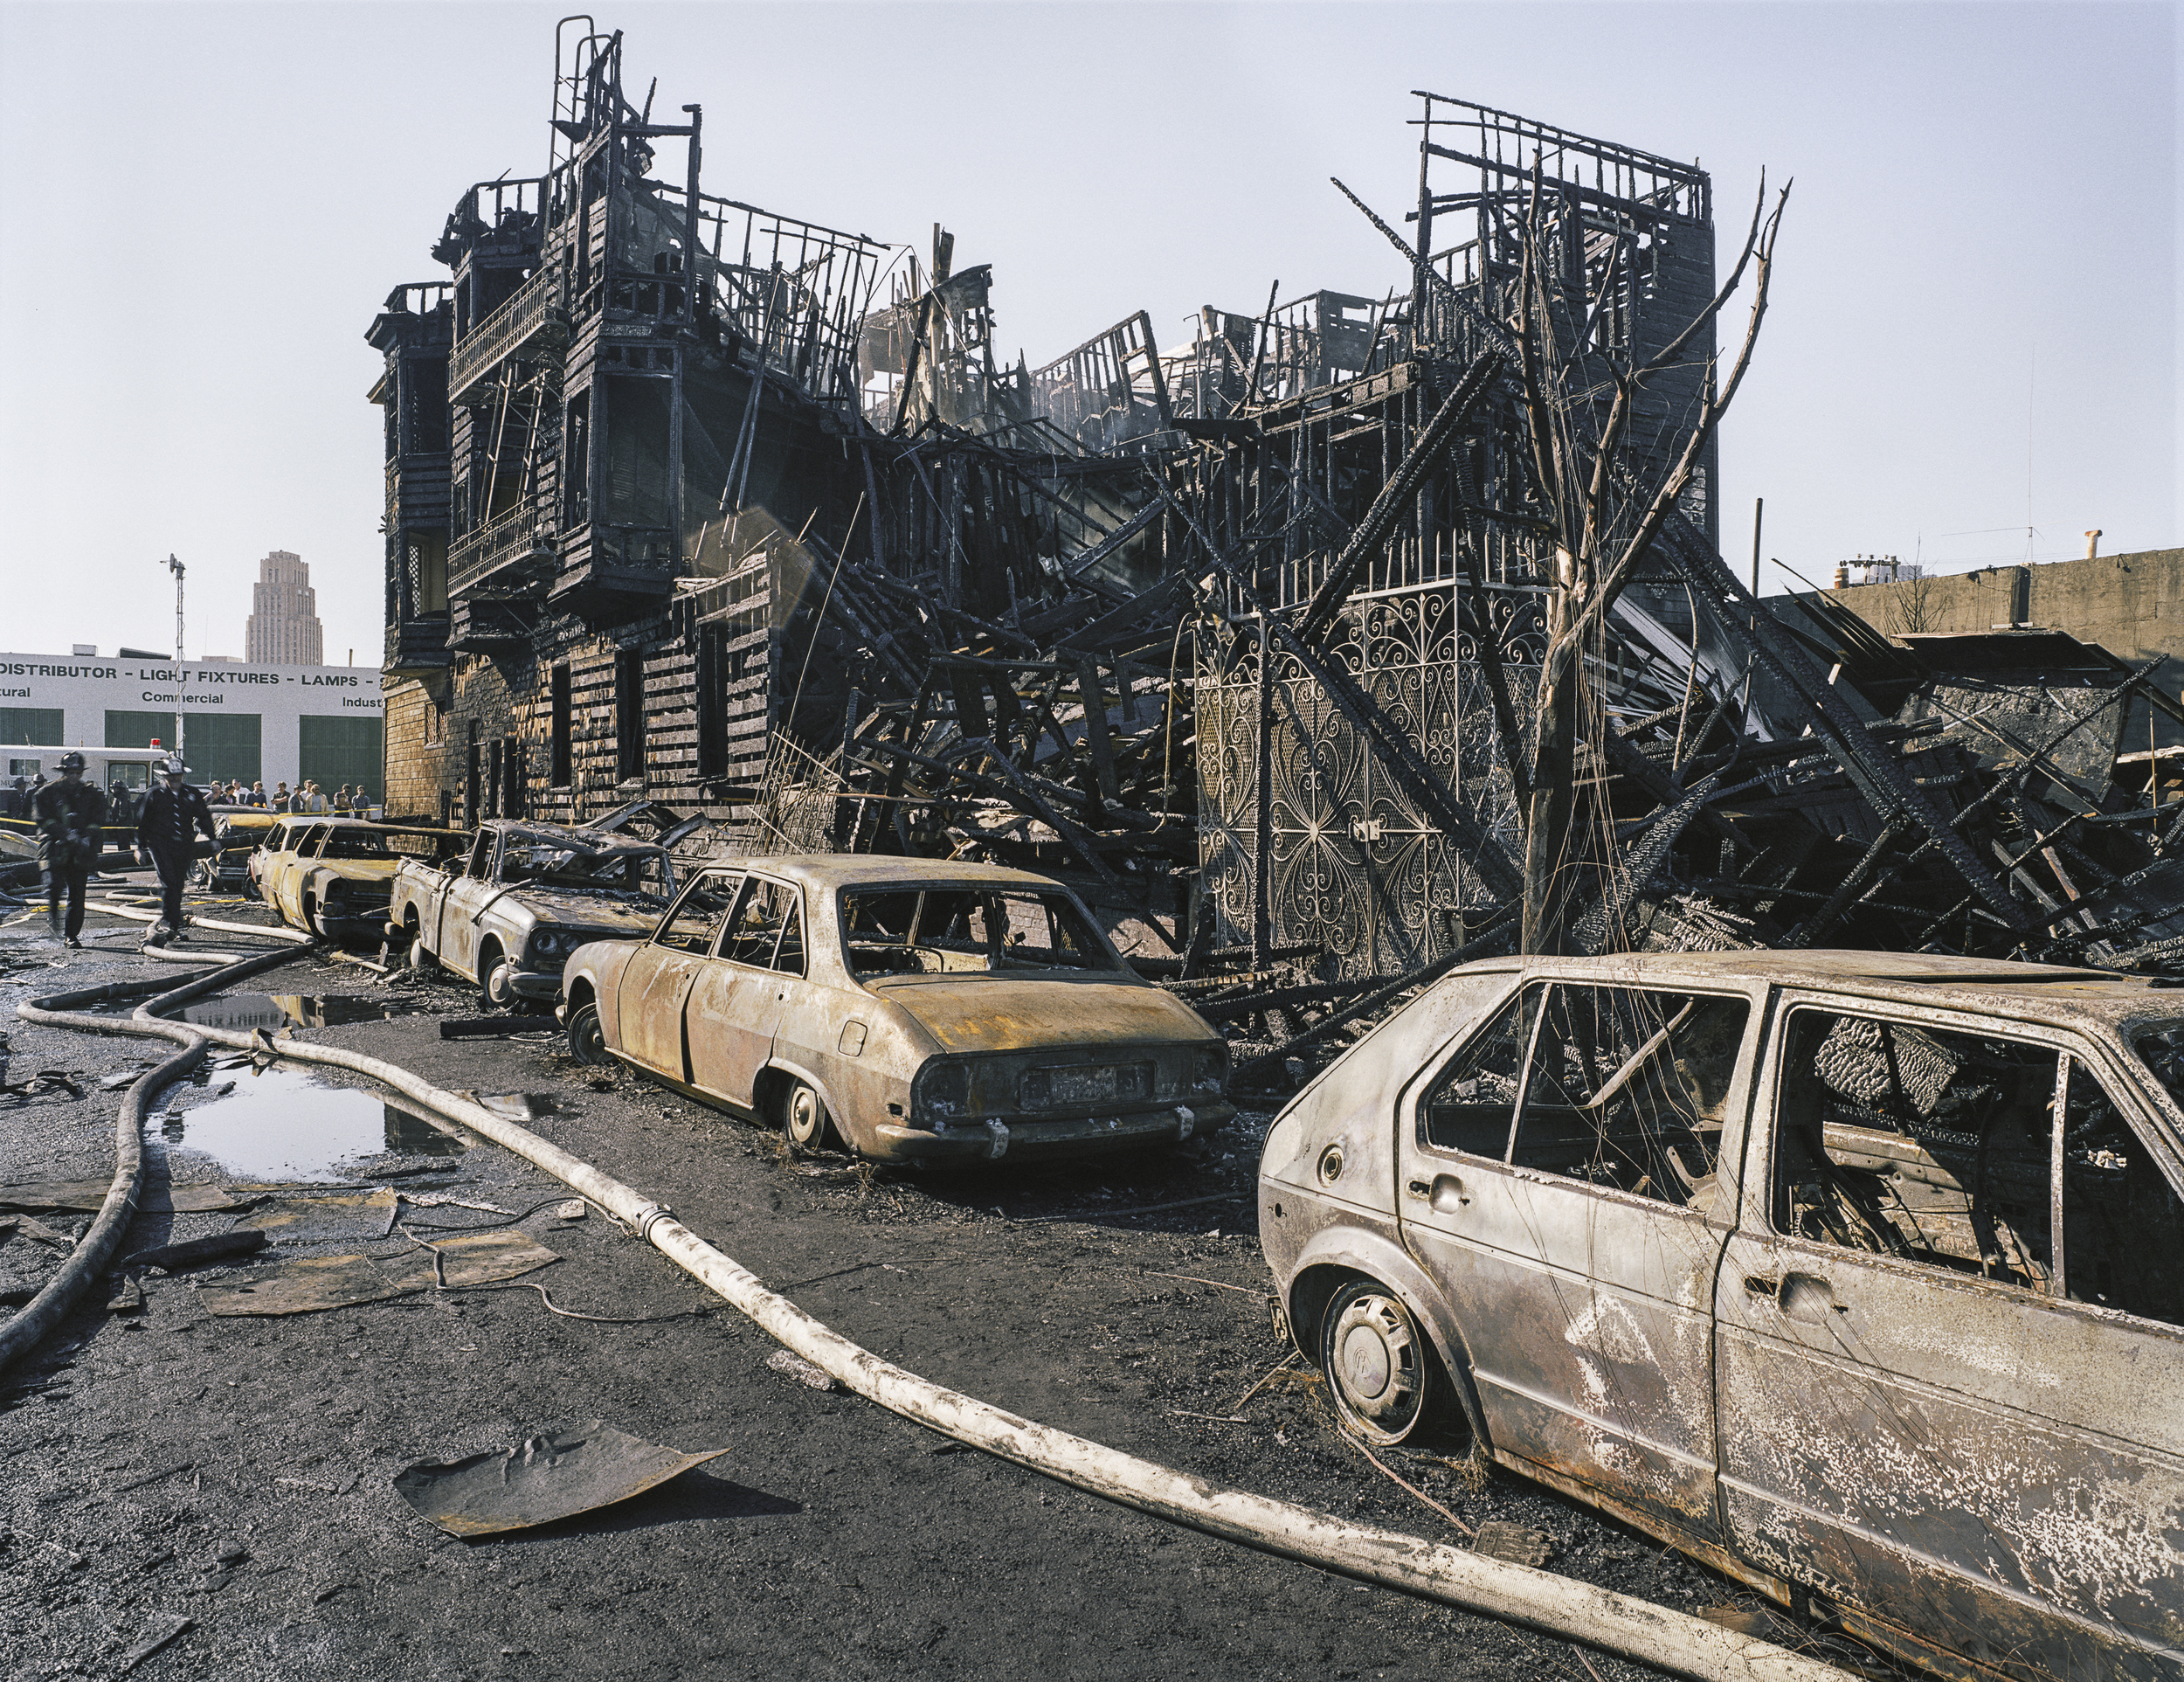 Remains of the July 10th five-alarm fire, Hallam Street, 1981 Archival Pigment Print, 2016 16 x 20 inches, edition of 5 20 x 24 inches, edition of 2 30 x 40 inches, edition of 2